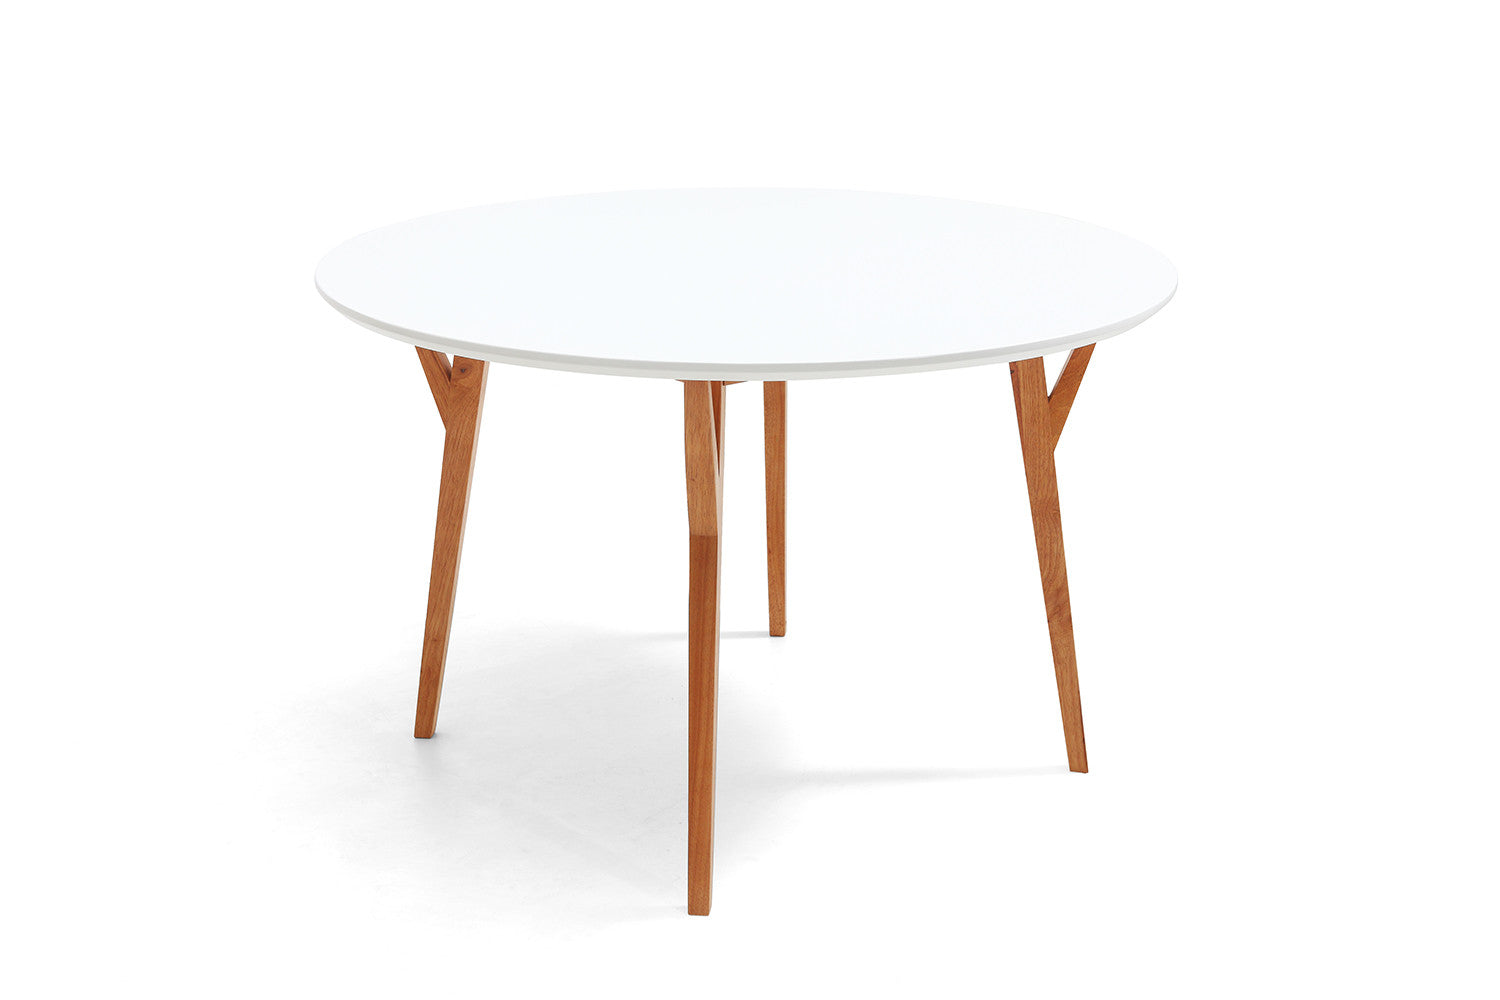 Table de salle manger ronde design scandinave moesa for Table de salle a manger ronde